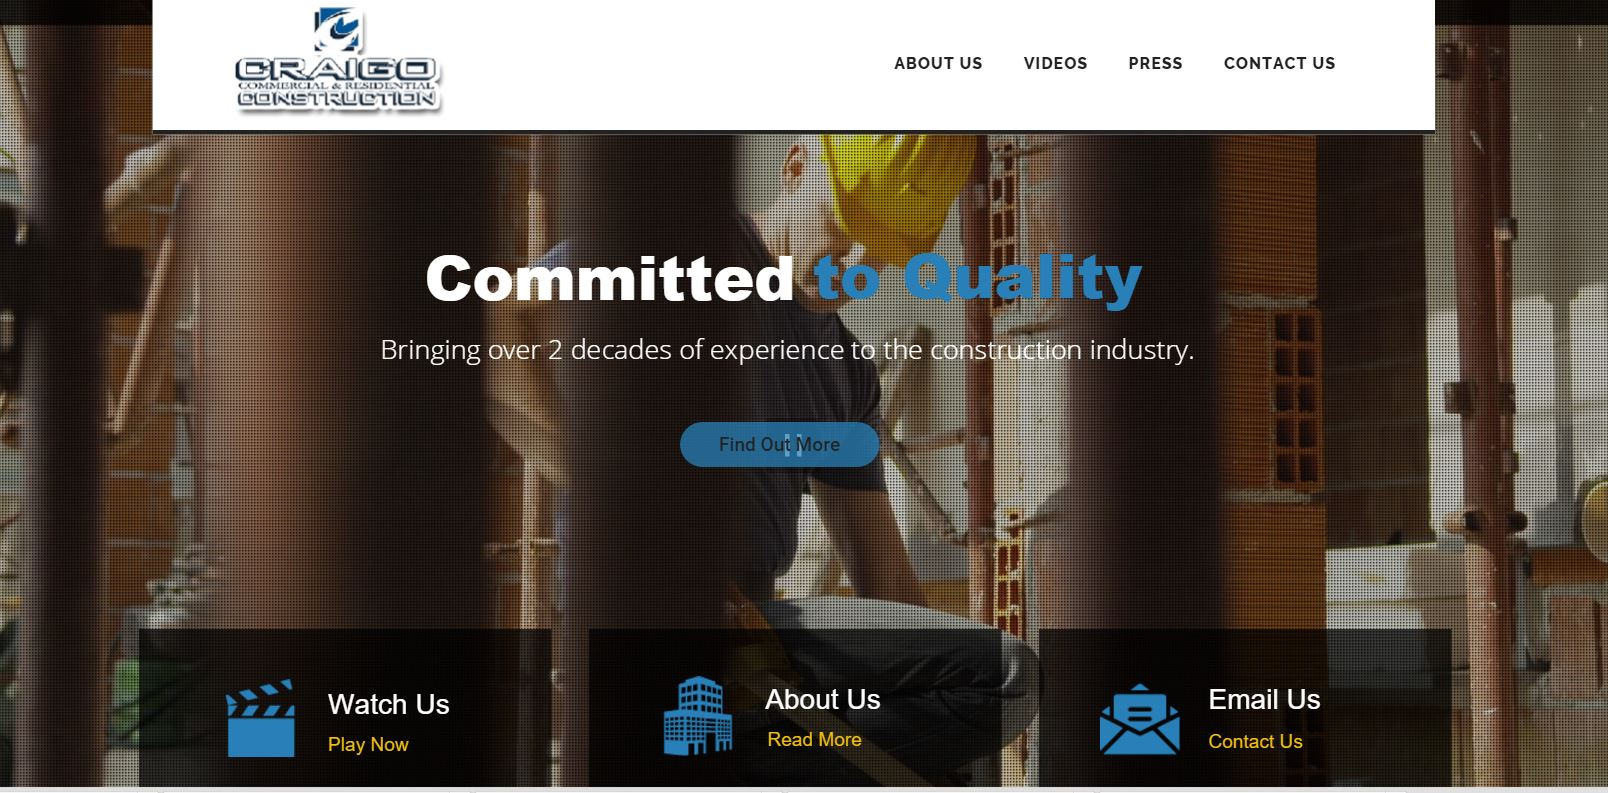 Craigo Construction website design by SkyPoint Studios